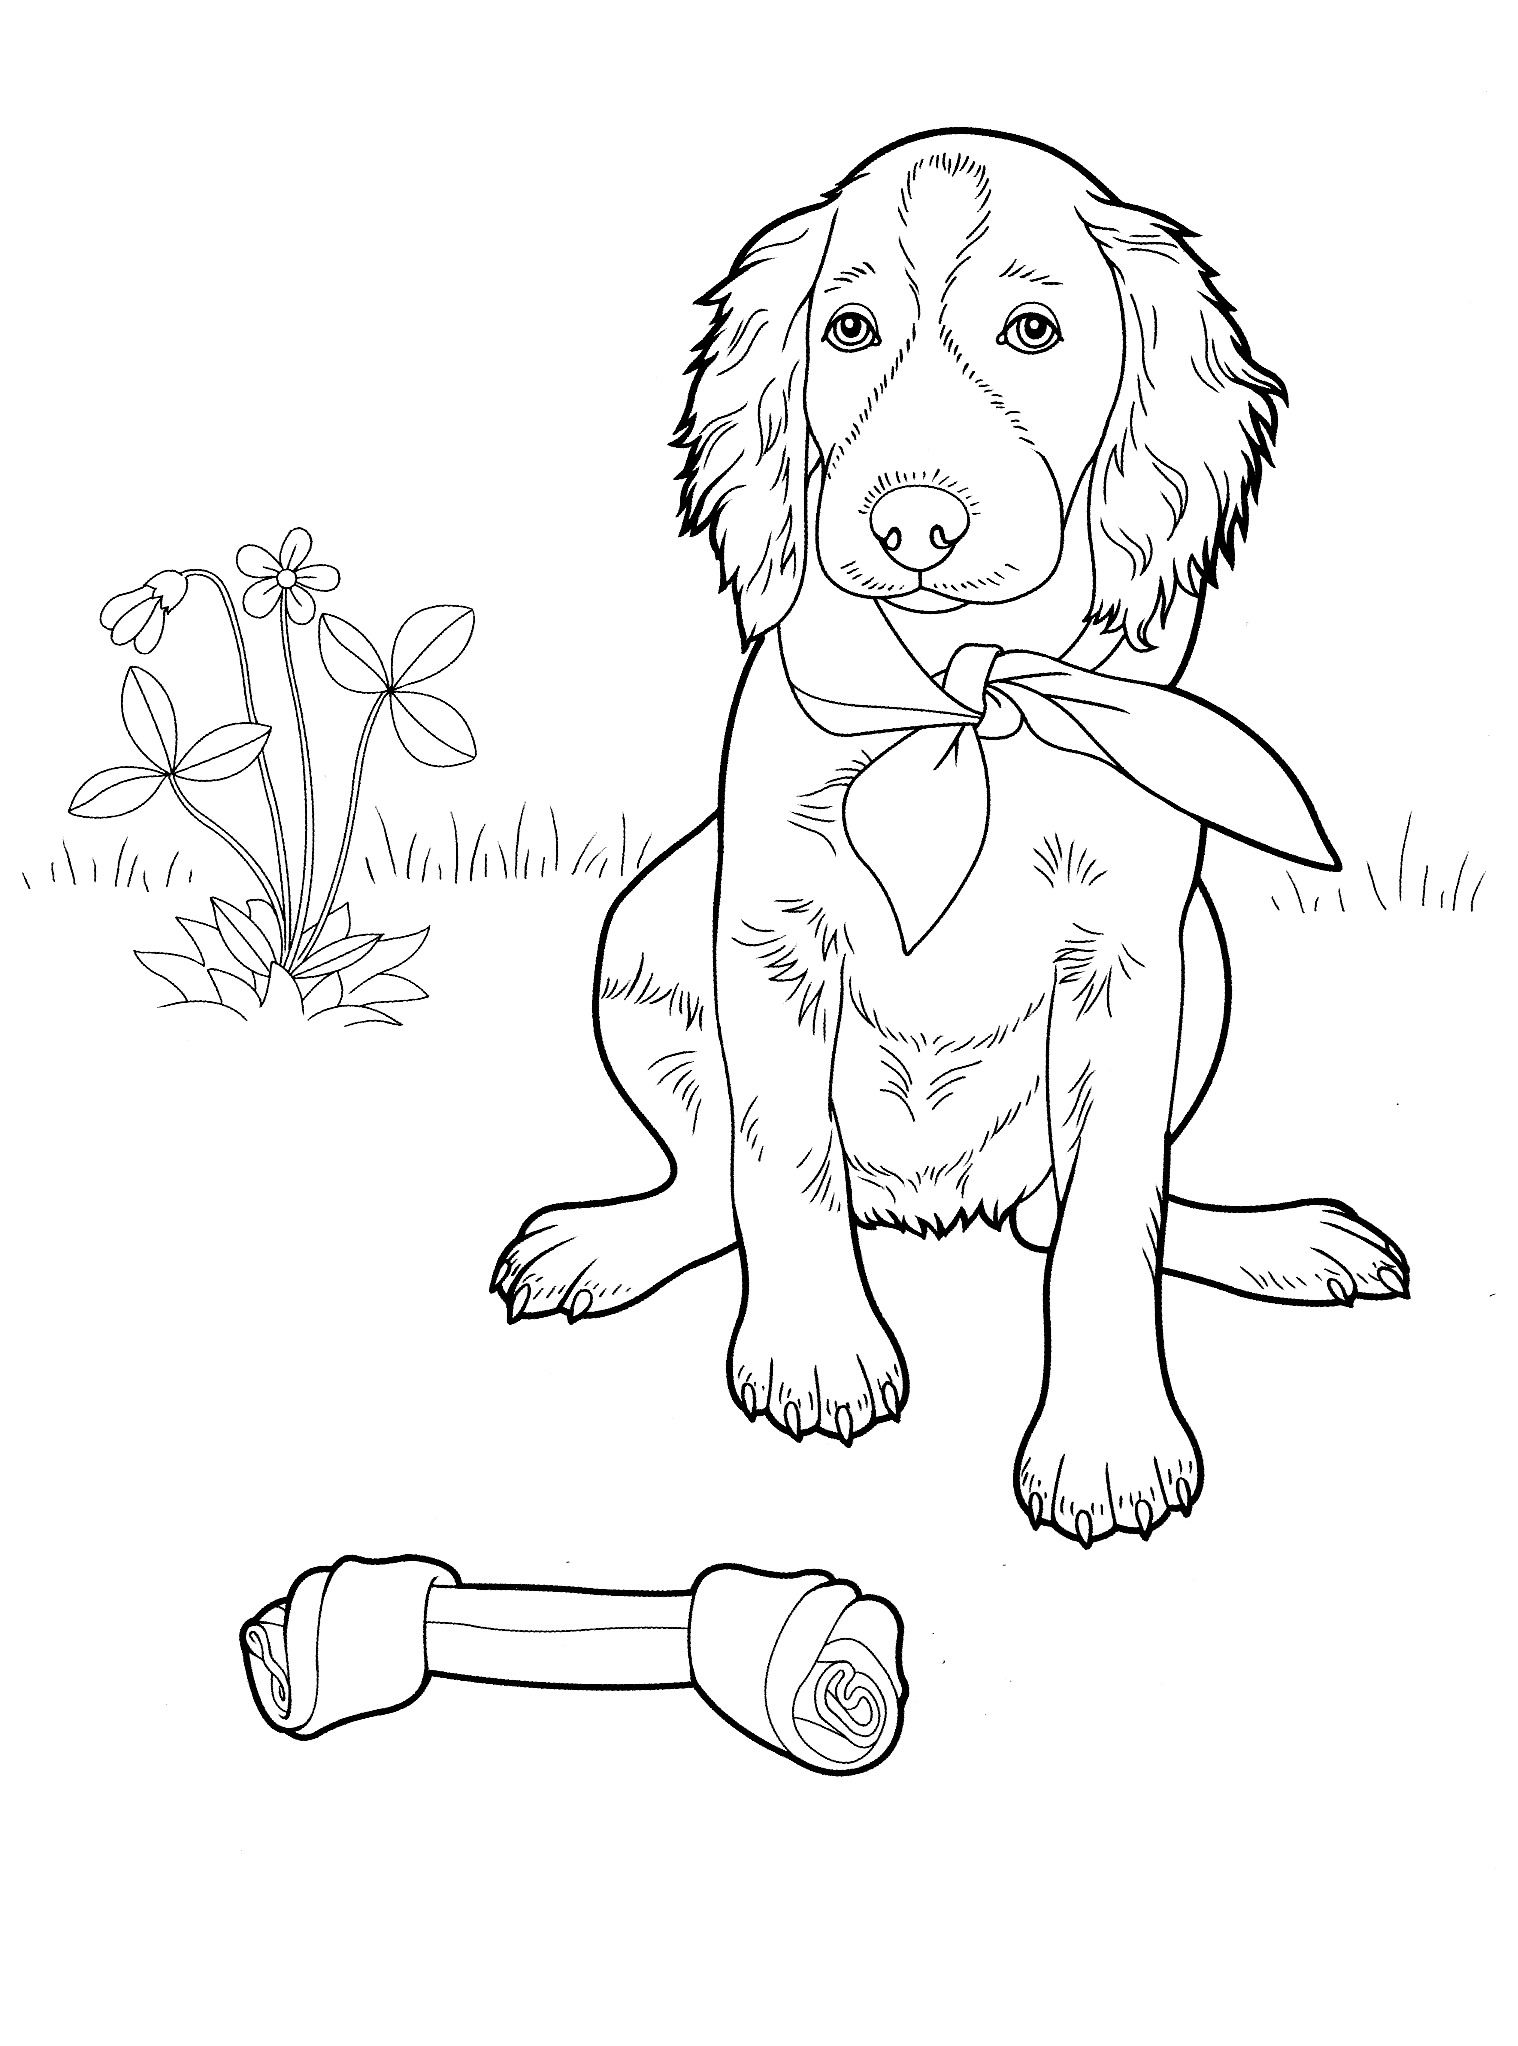 Dog Coloring Pages 17 Teenagers Coloring Pages Puppy Coloring